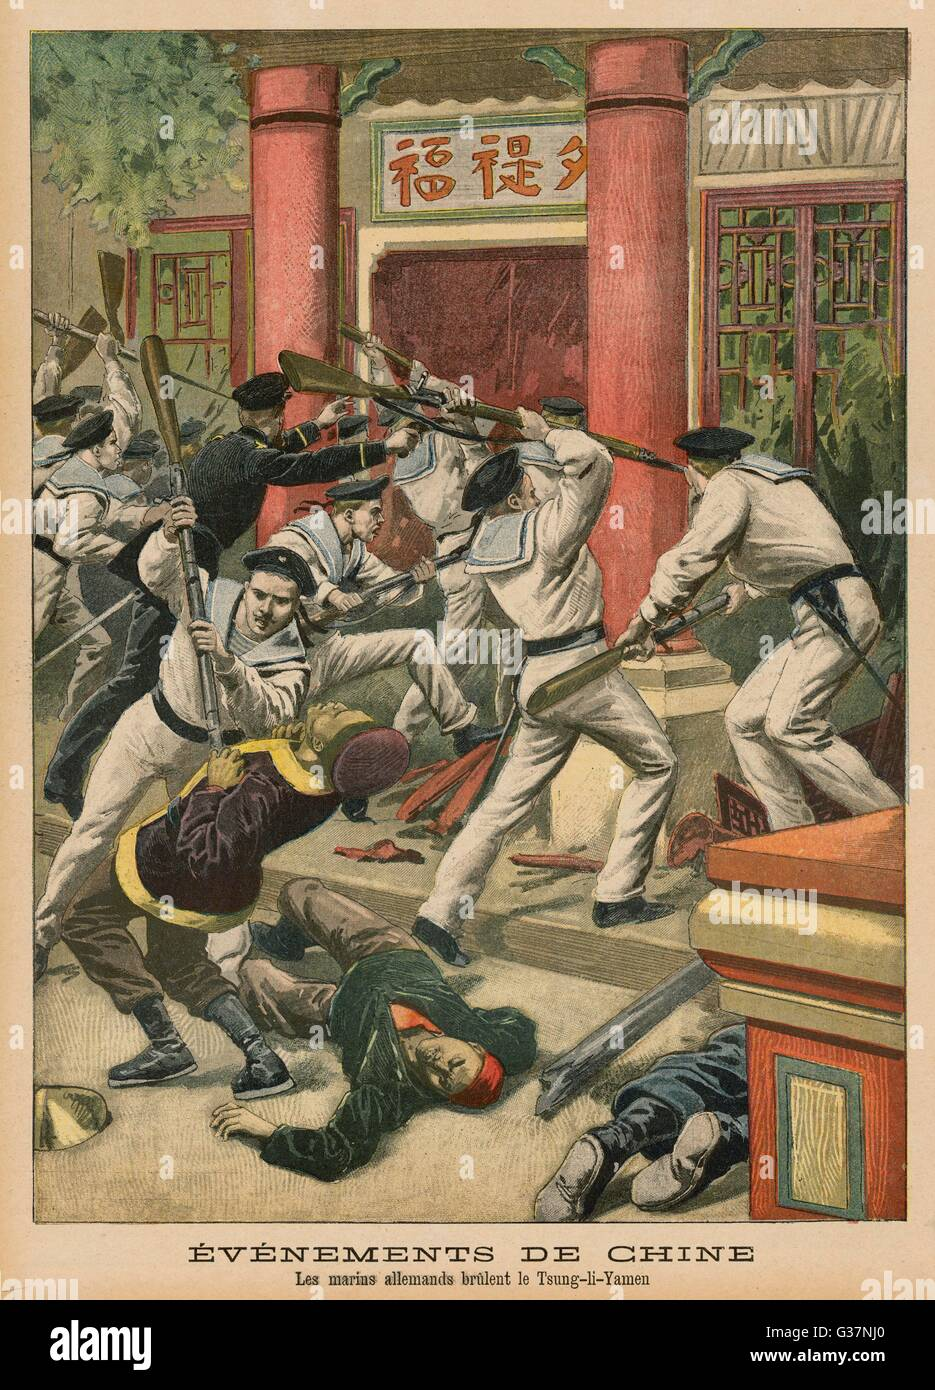 BOXER REBELLION German sailors attack and  destroy the Tsung-li-Yamen,  ministry of foreign affairs at  Peking  - Stock Image